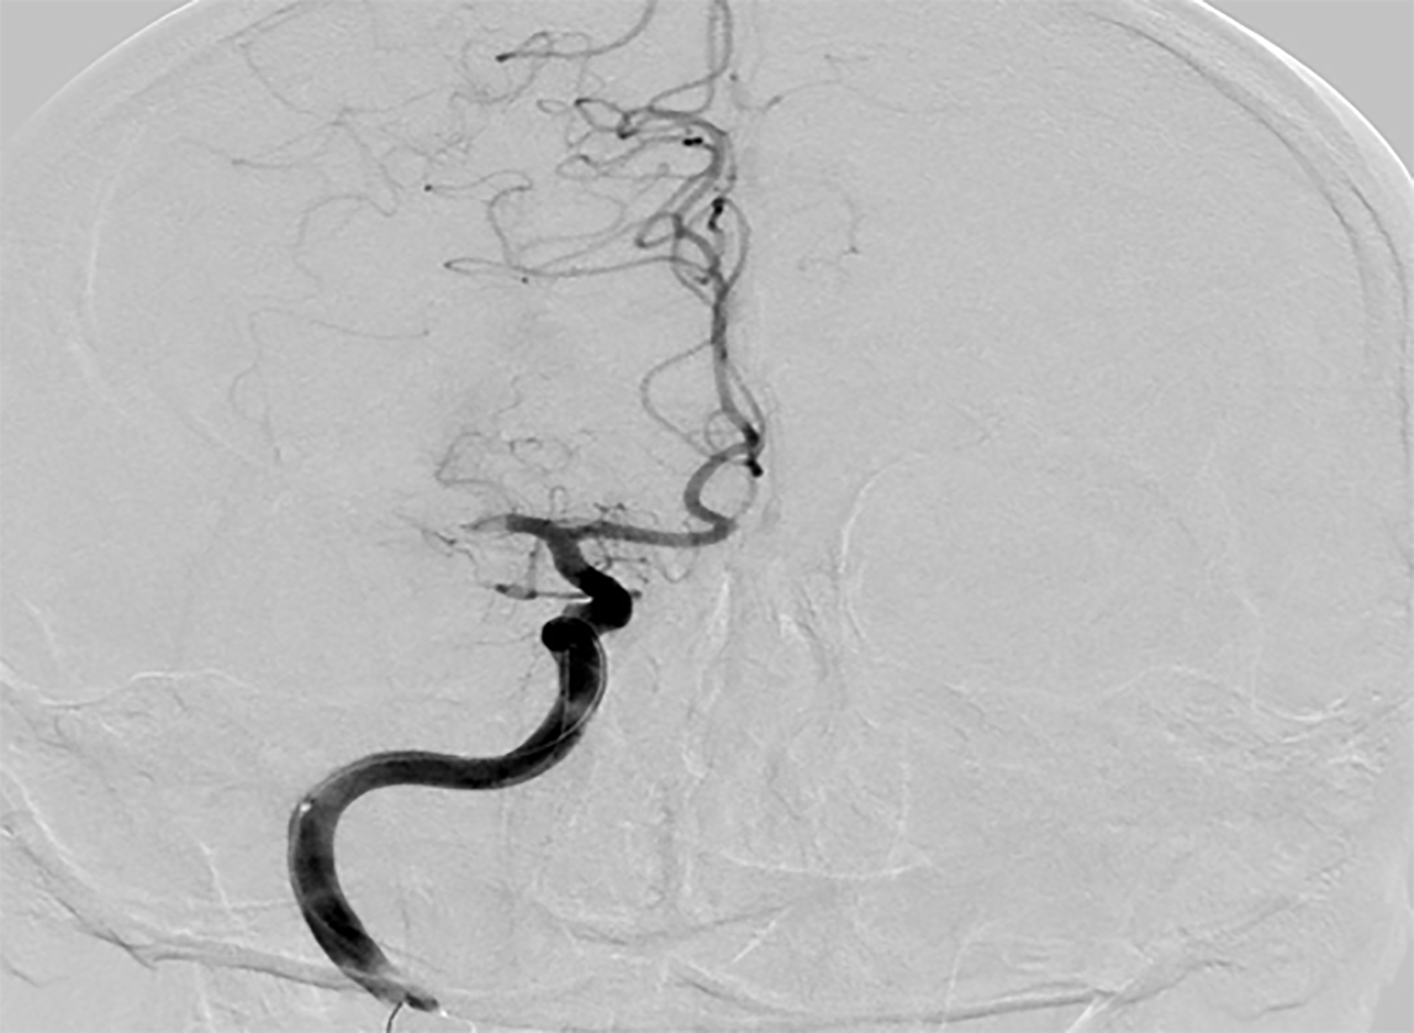 Occlusion of right middle cerebral artery